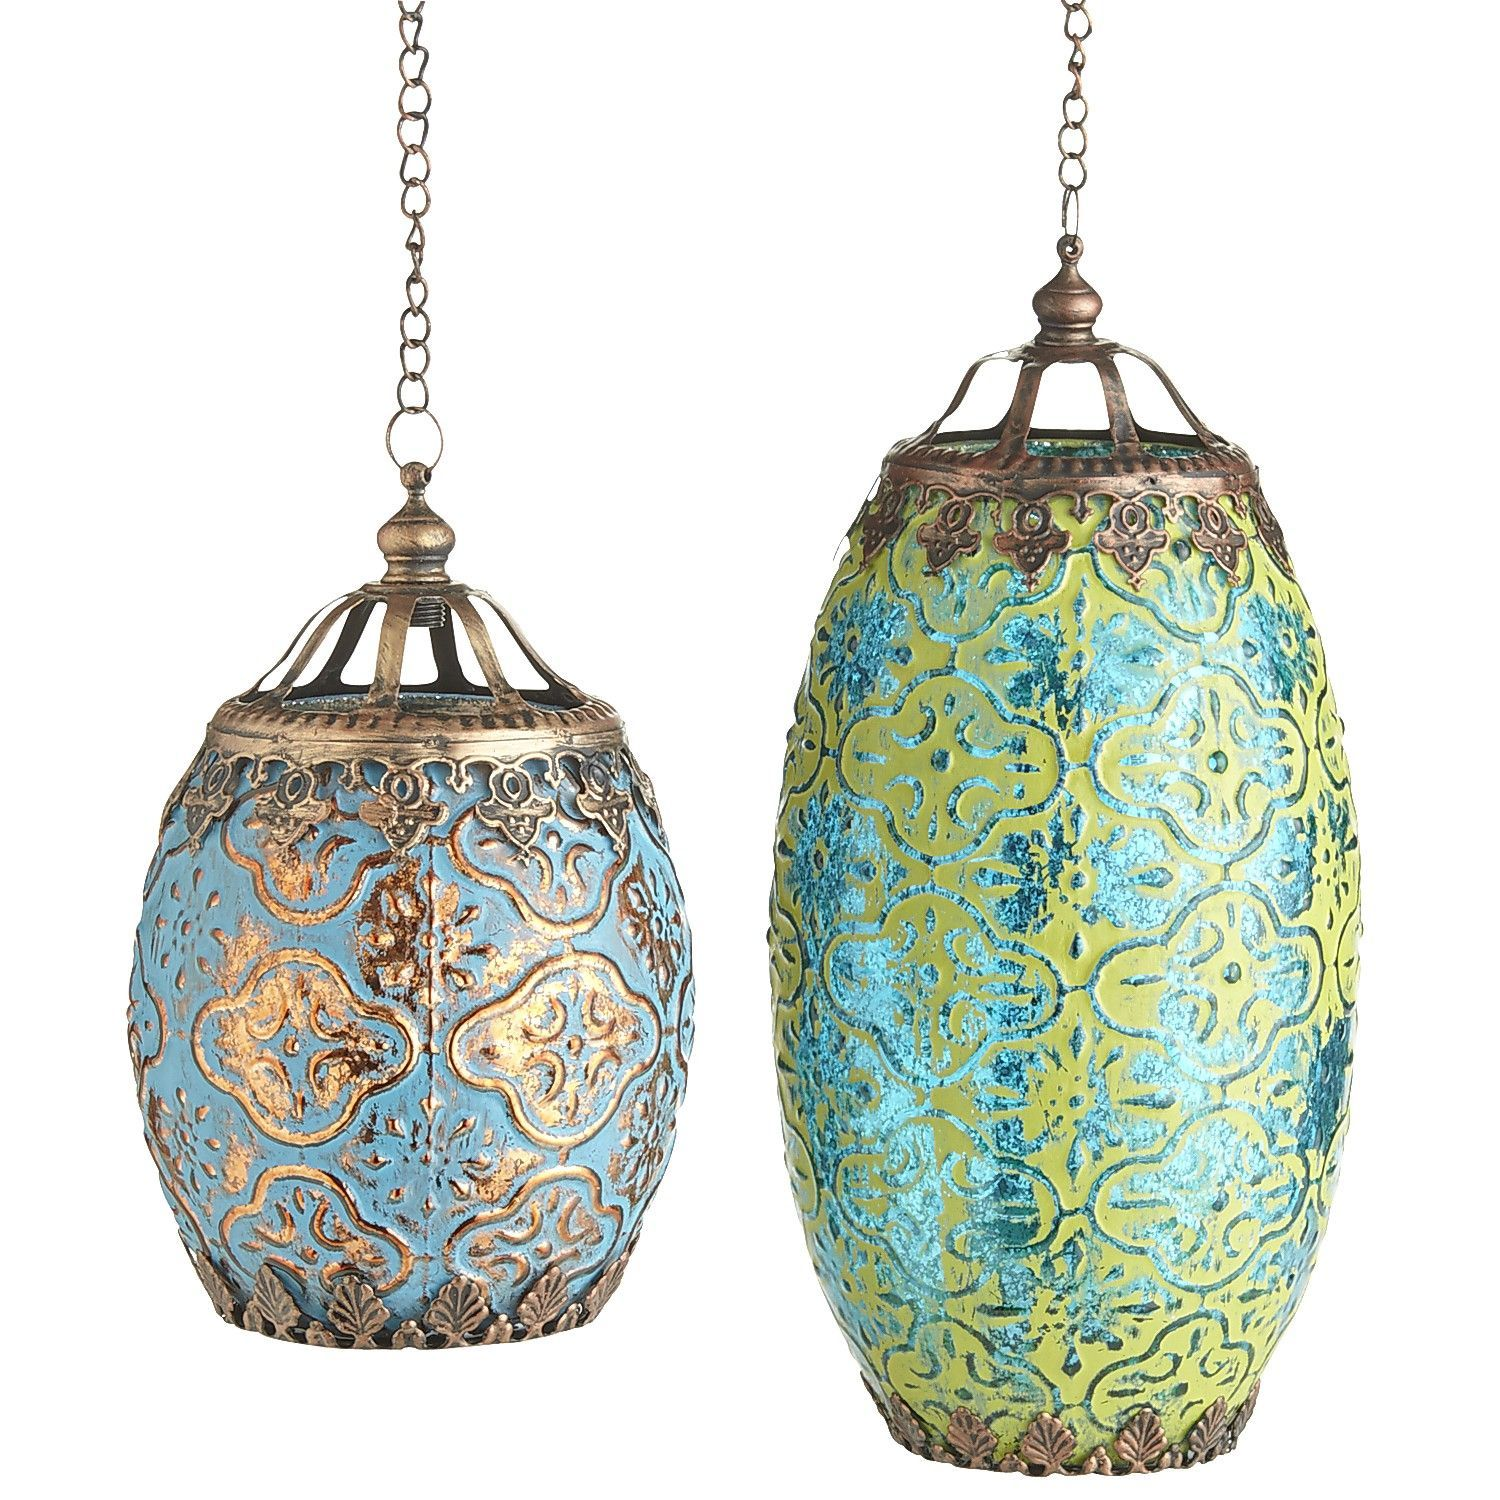 Pier 1: Bohemian Mercury Hanging Lanterns I could see my daughter ...